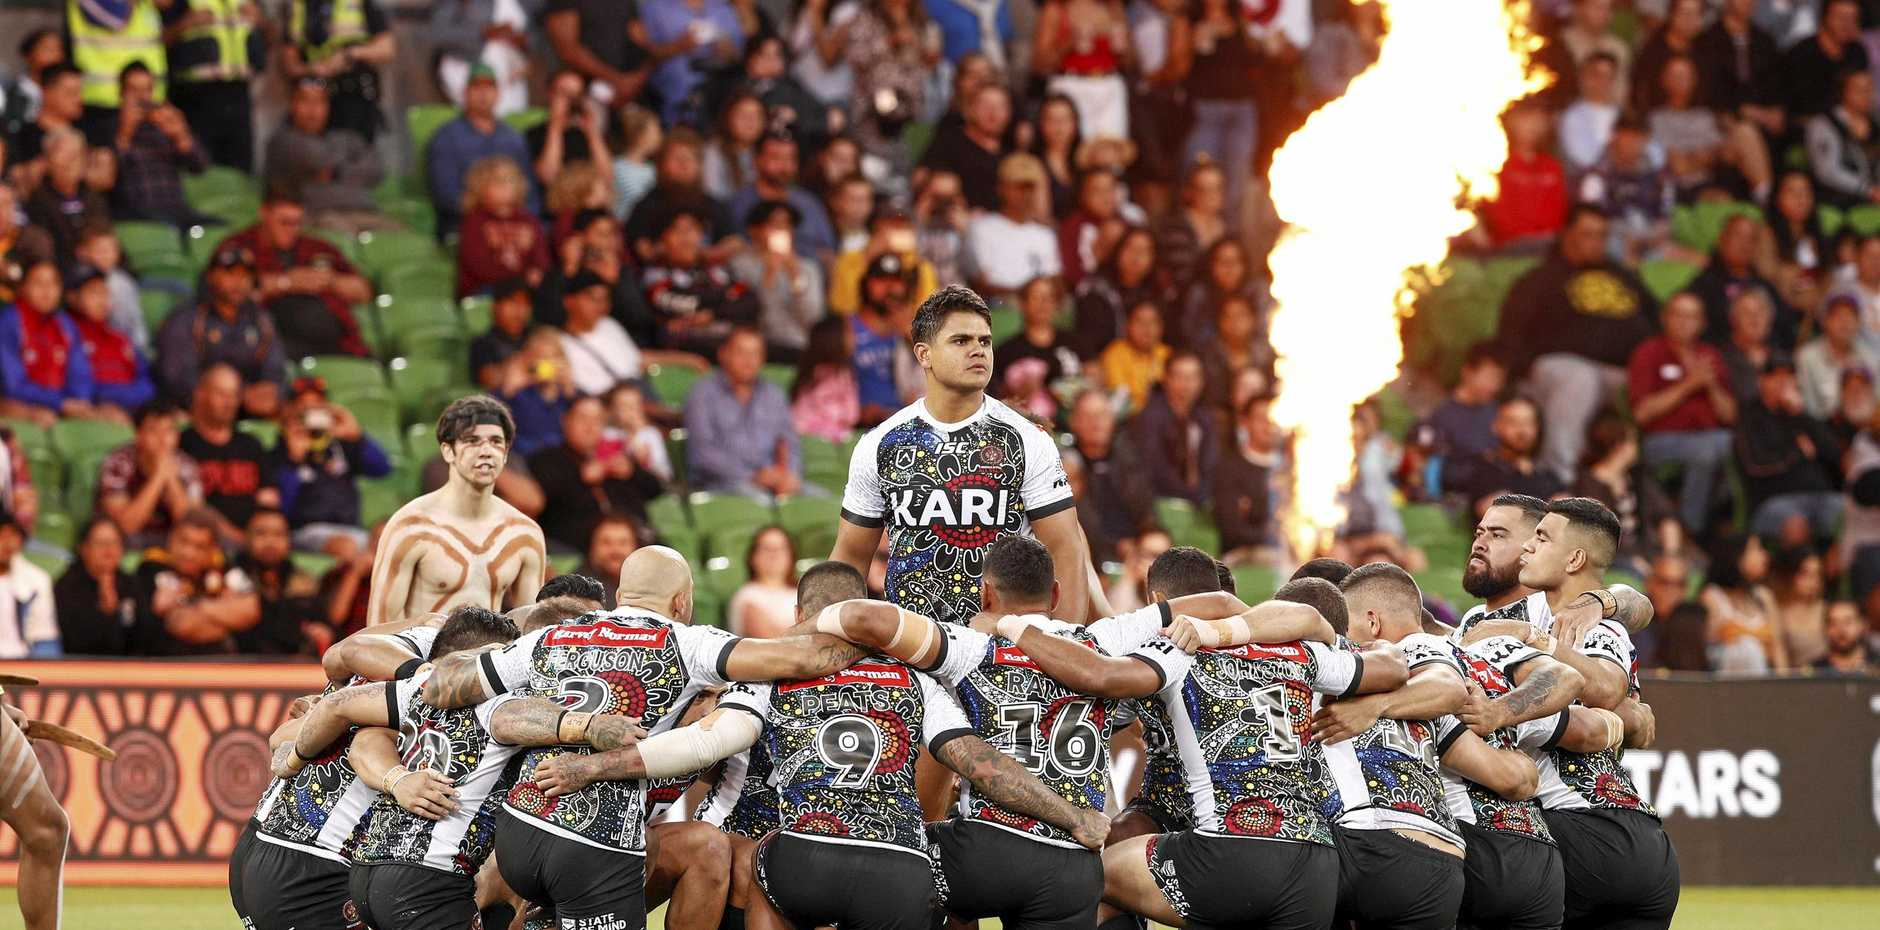 Indigenous players perform a traditional war cry ahead of the NRL Indigenous All-Stars versus New Zealand Maori in Melbourne on Friday night. Picture: Daniel Pockett/AAP